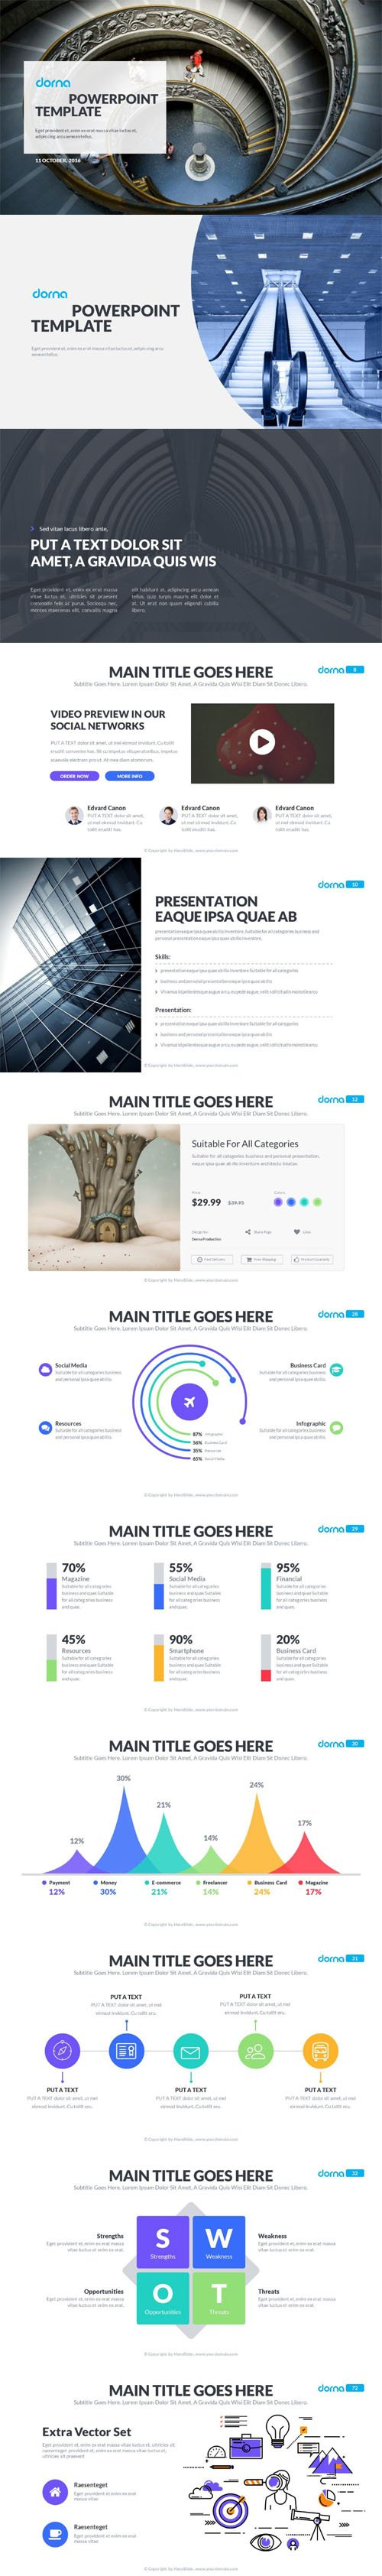 Dorna PowerPoint Presentation Template [152 Slides]